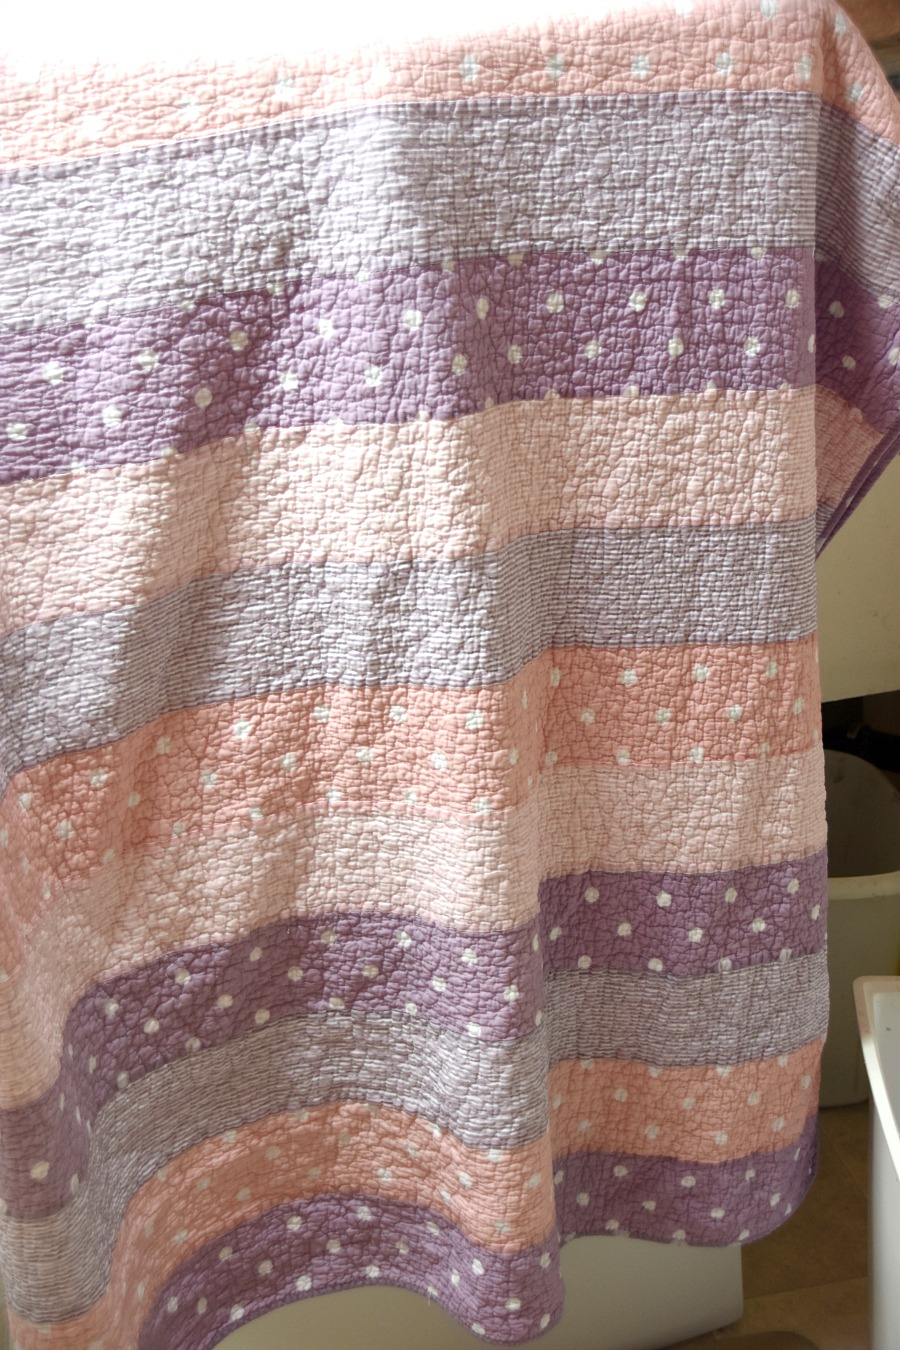 Using Rit Dye to get a Pottery Barn look, over-dying a quilt, rit dye, rit dye a quilt, how to dye a quilt